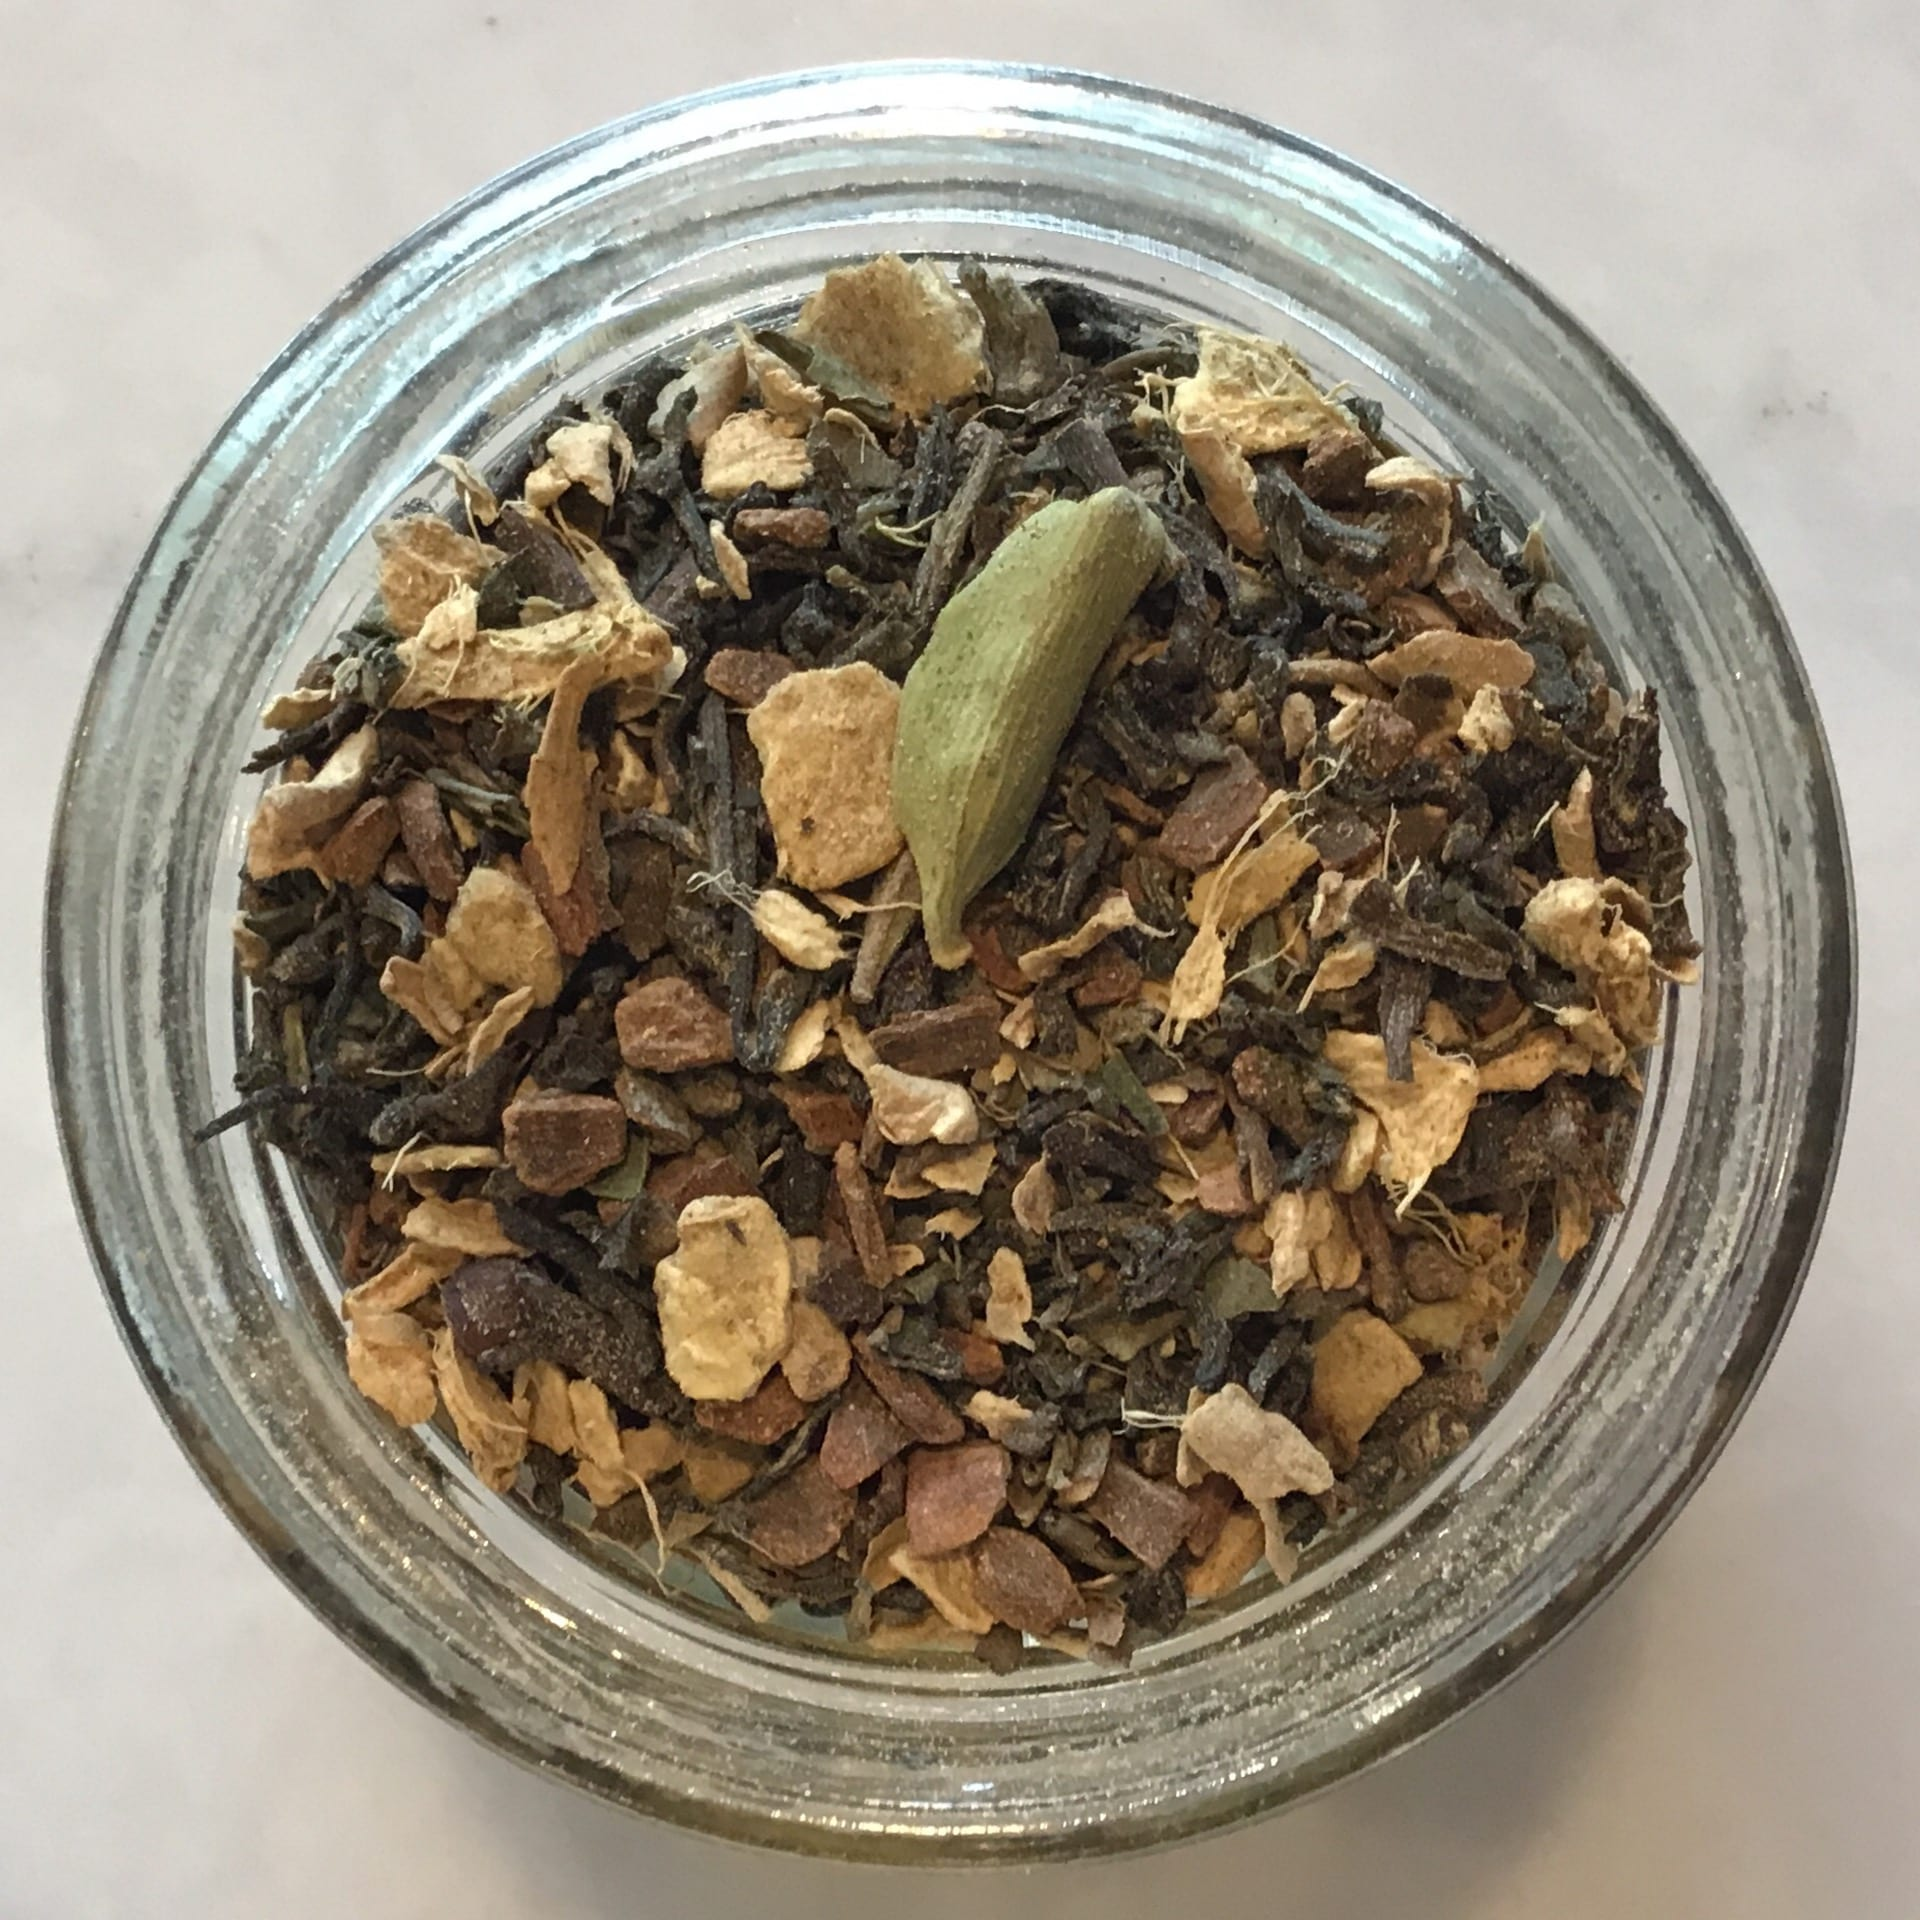 Enjoy this delicious organic caffeinated chai tea blend - warming spices with organic darjeeling black tea